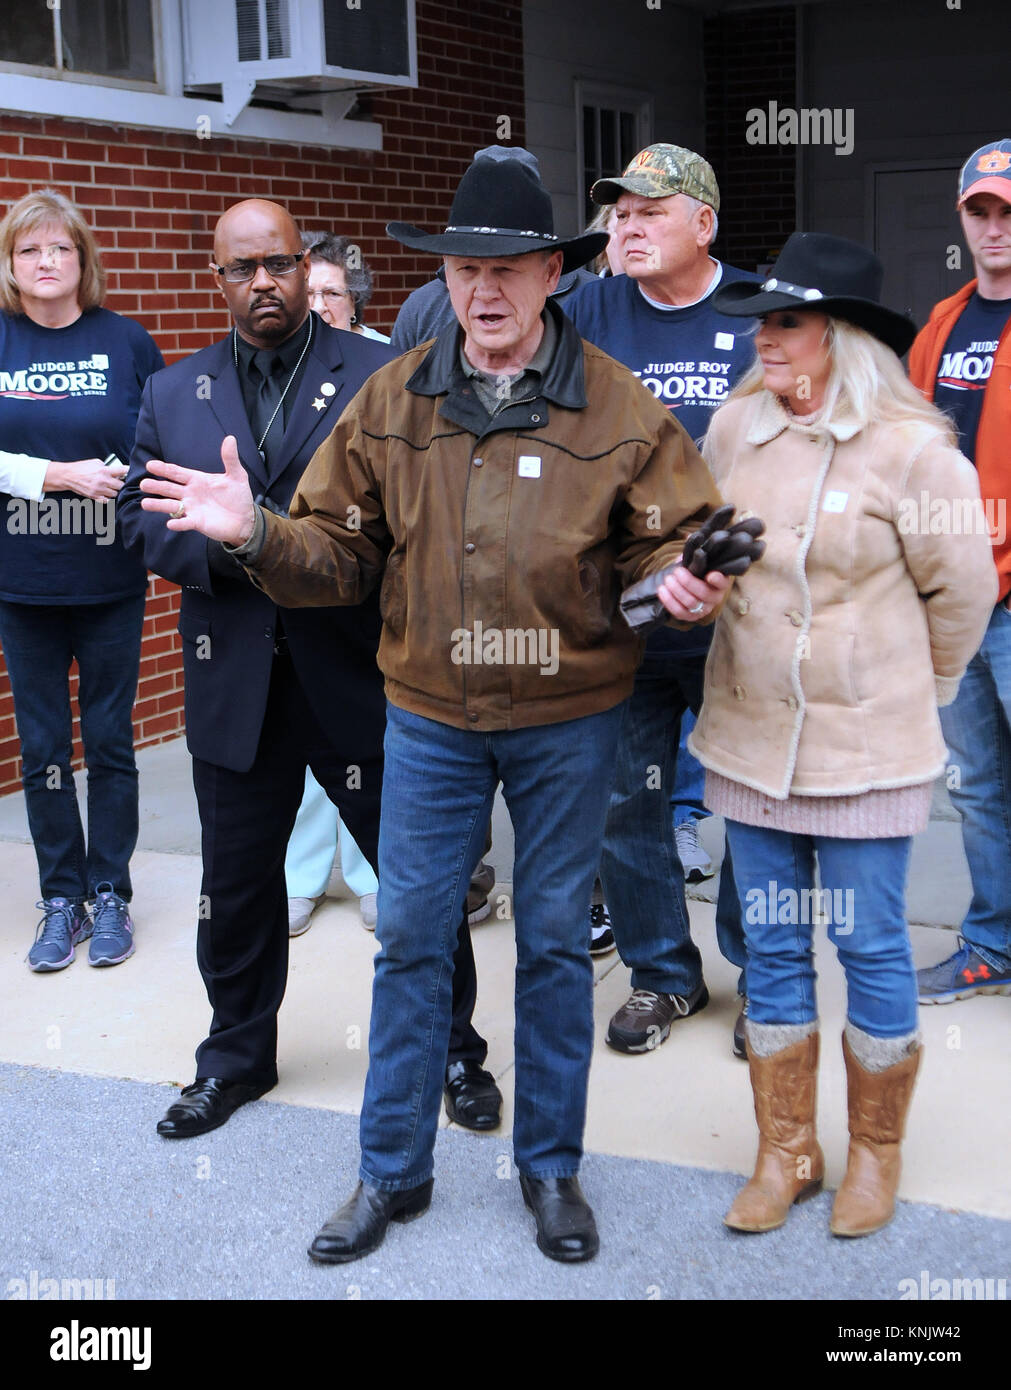 Gallant, United States. 12th Dec, 2017. Judge Roy Moore answers questions from the media after voting with his wife, - Stock Image